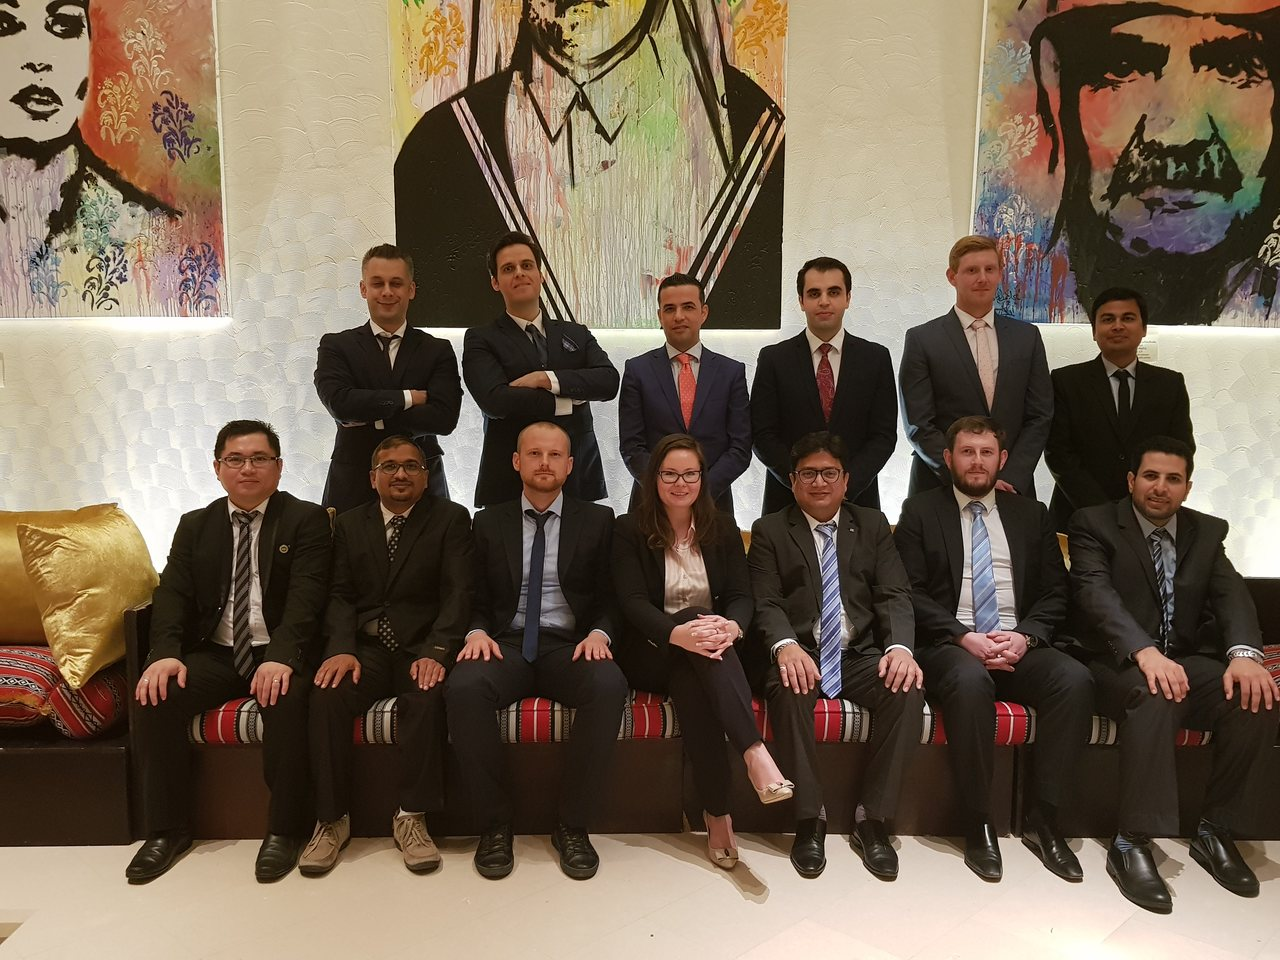 AACE Qatar Section Committee 2018/2019